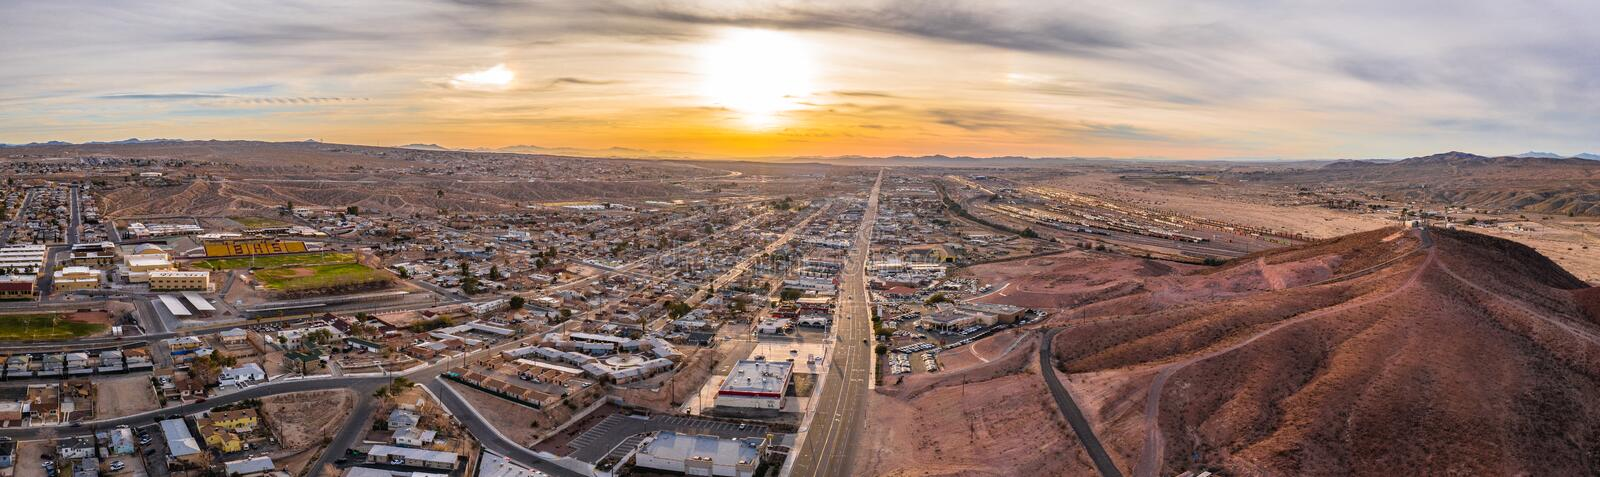 Aerial view of Barstow community a residential city of homes and commercial property community Mojave desert California stock photo